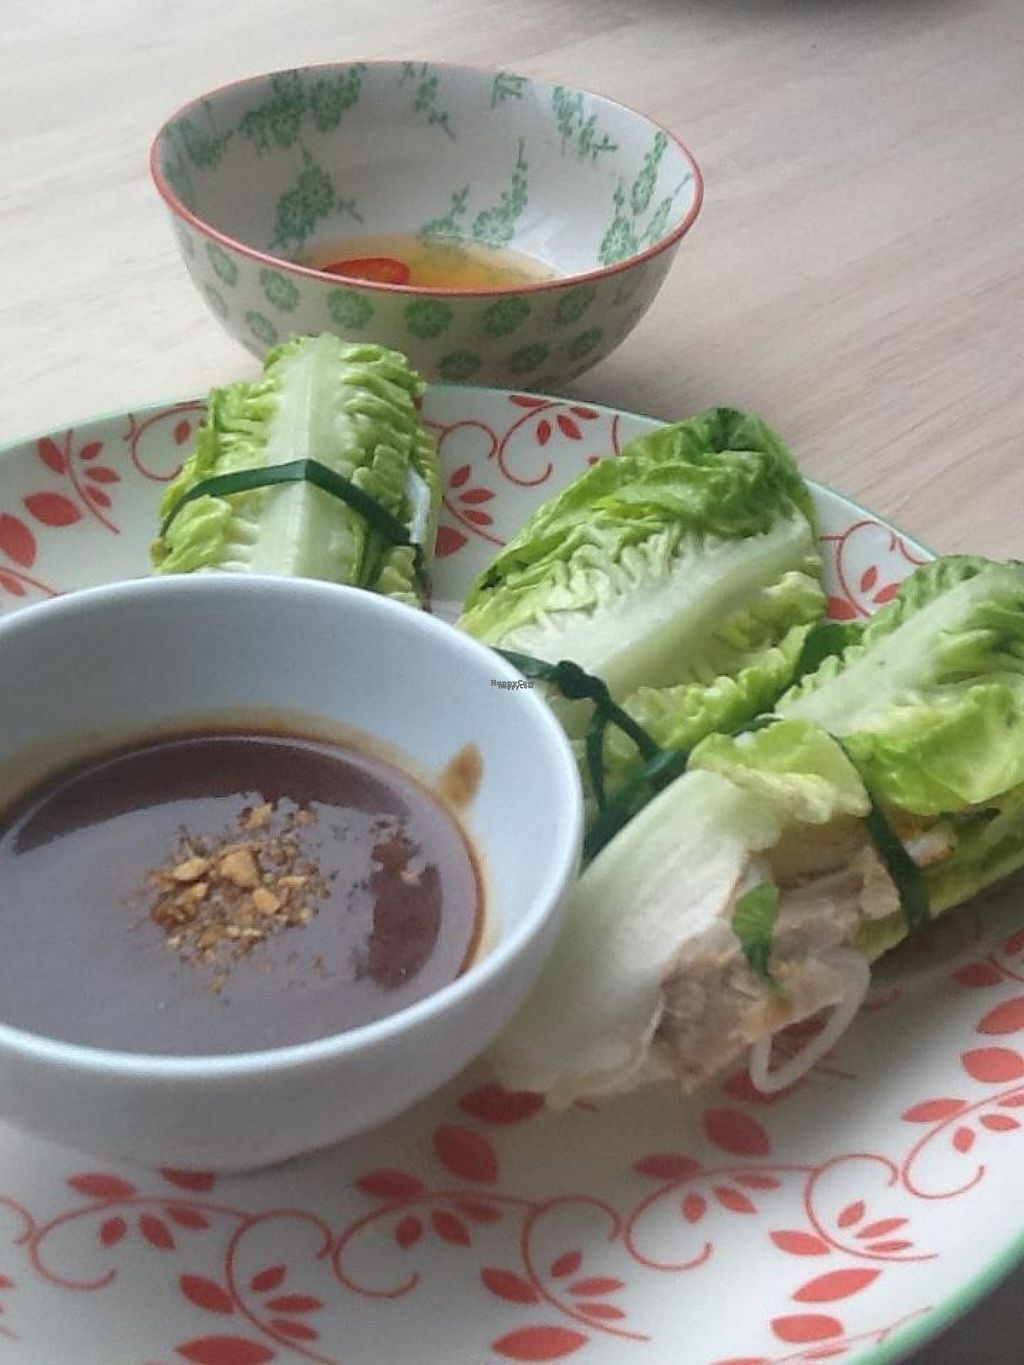 """Photo of Ramen  by <a href=""""/members/profile/Meaks"""">Meaks</a> <br/>Vietnamese springroll <br/> August 4, 2016  - <a href='/contact/abuse/image/70640/165573'>Report</a>"""